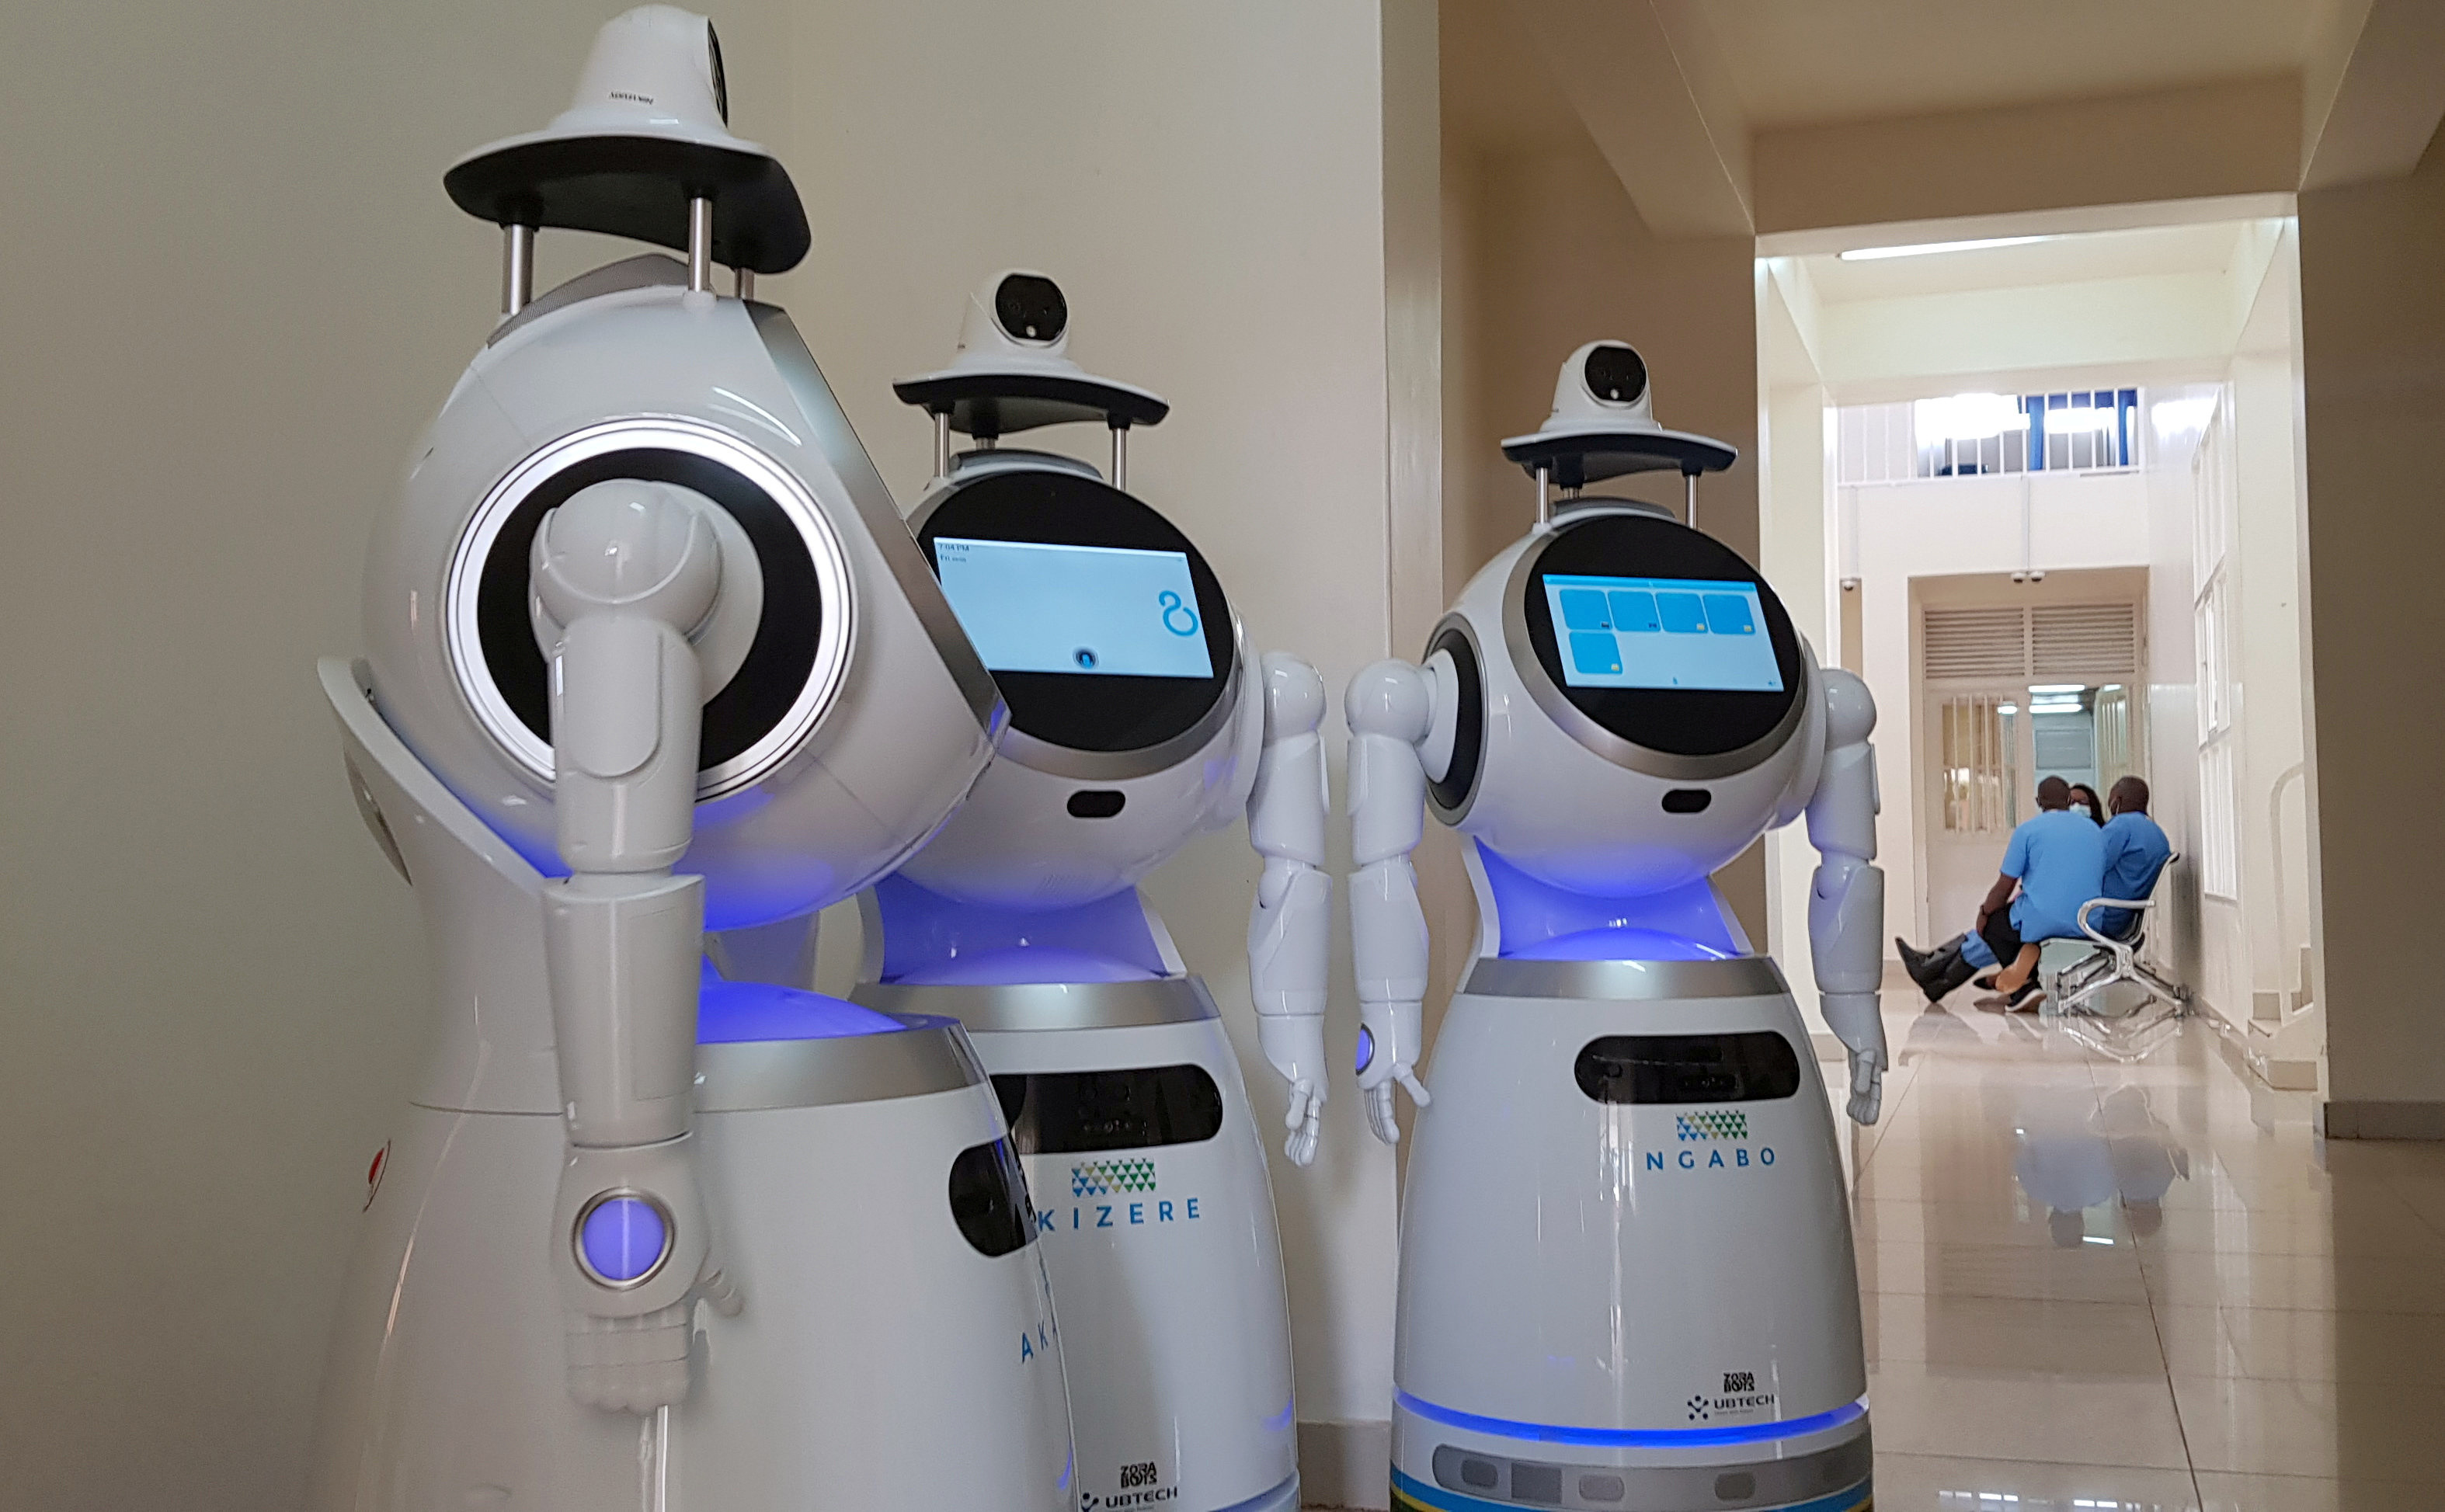 COIVD-19: Robots are supporting hospital staff in Rwanda | World Economic  Forum